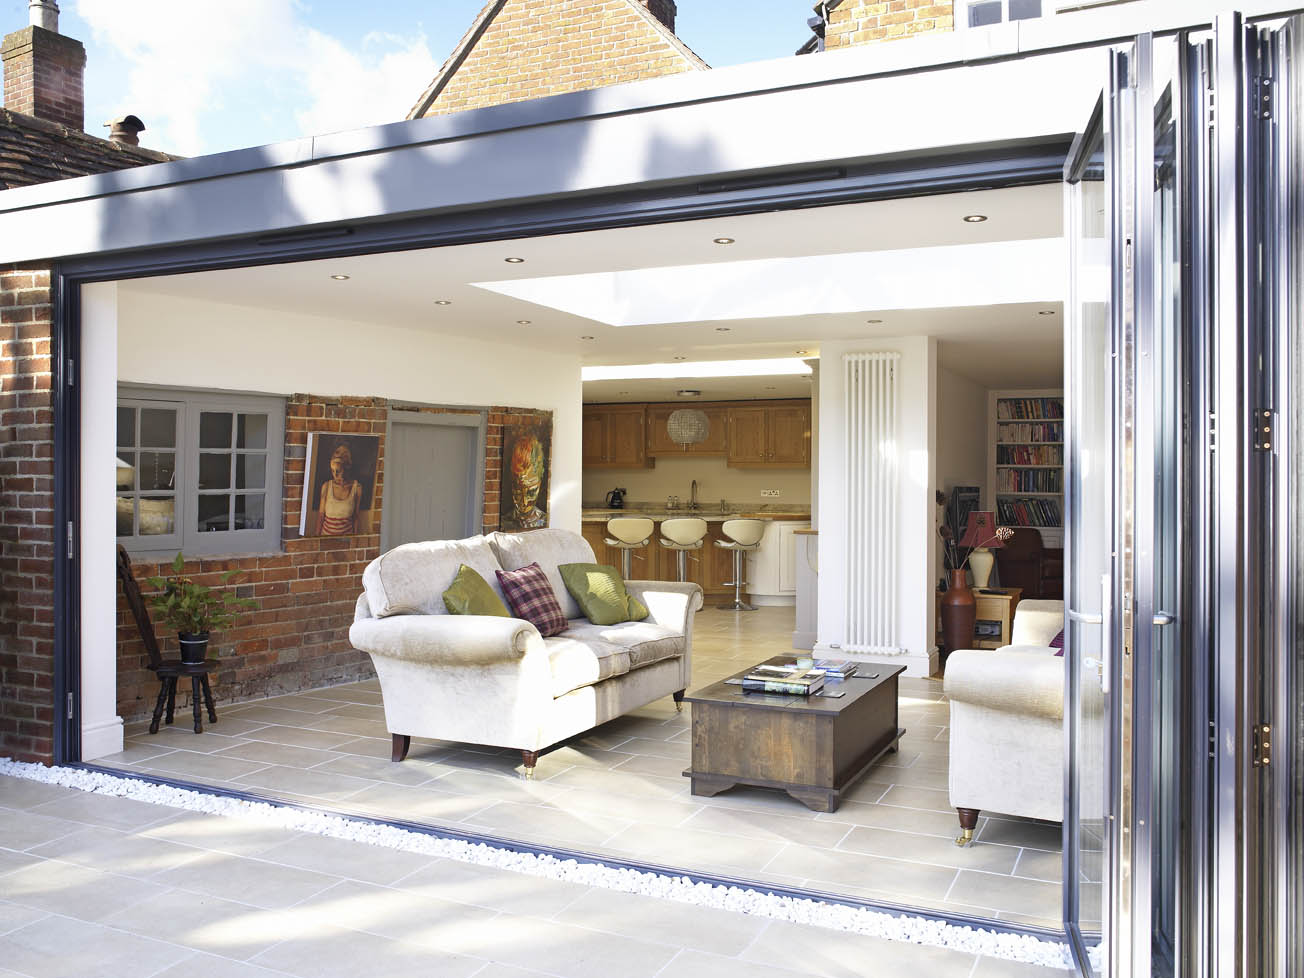 Fantastic foursome of folding sliding doors apropos for Orangery interior design ideas